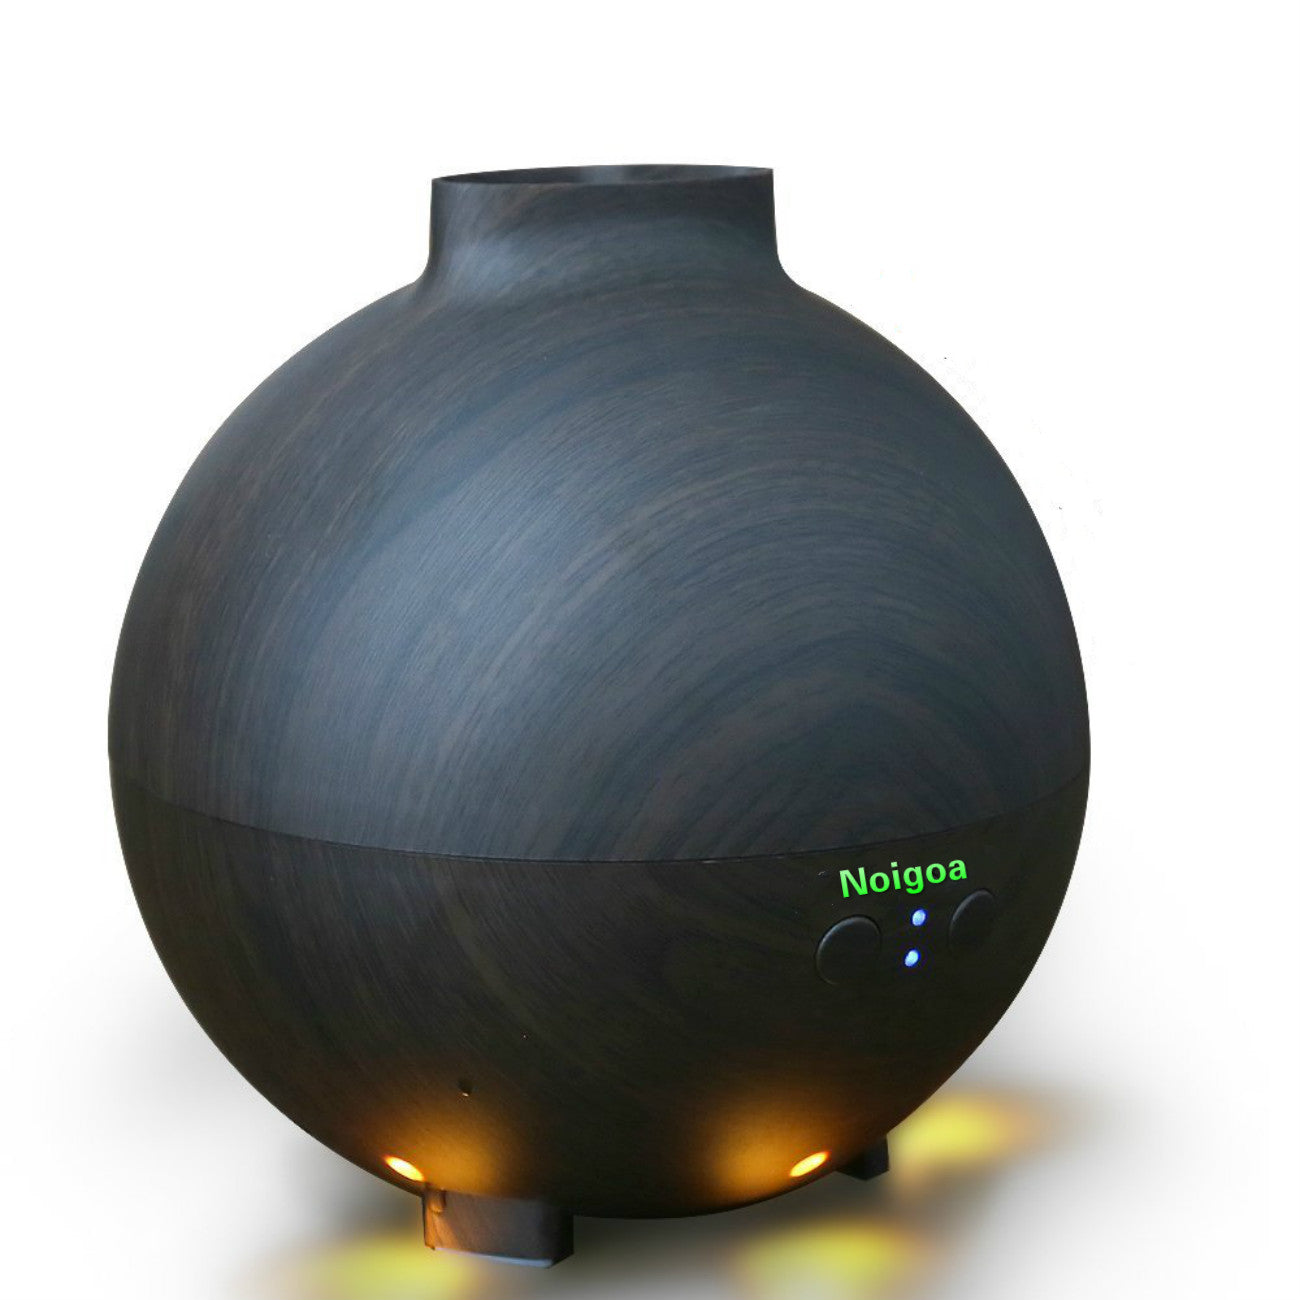 Ultrasonic Aromatherapy Essential Oil Diffuser 600ml , Wood Grain Aromatherapy Diffuser Ultrasonic Cool Mist Humidifier with Color LED Lights Changing and Waterless Auto Shut-off for Bedroom Office H